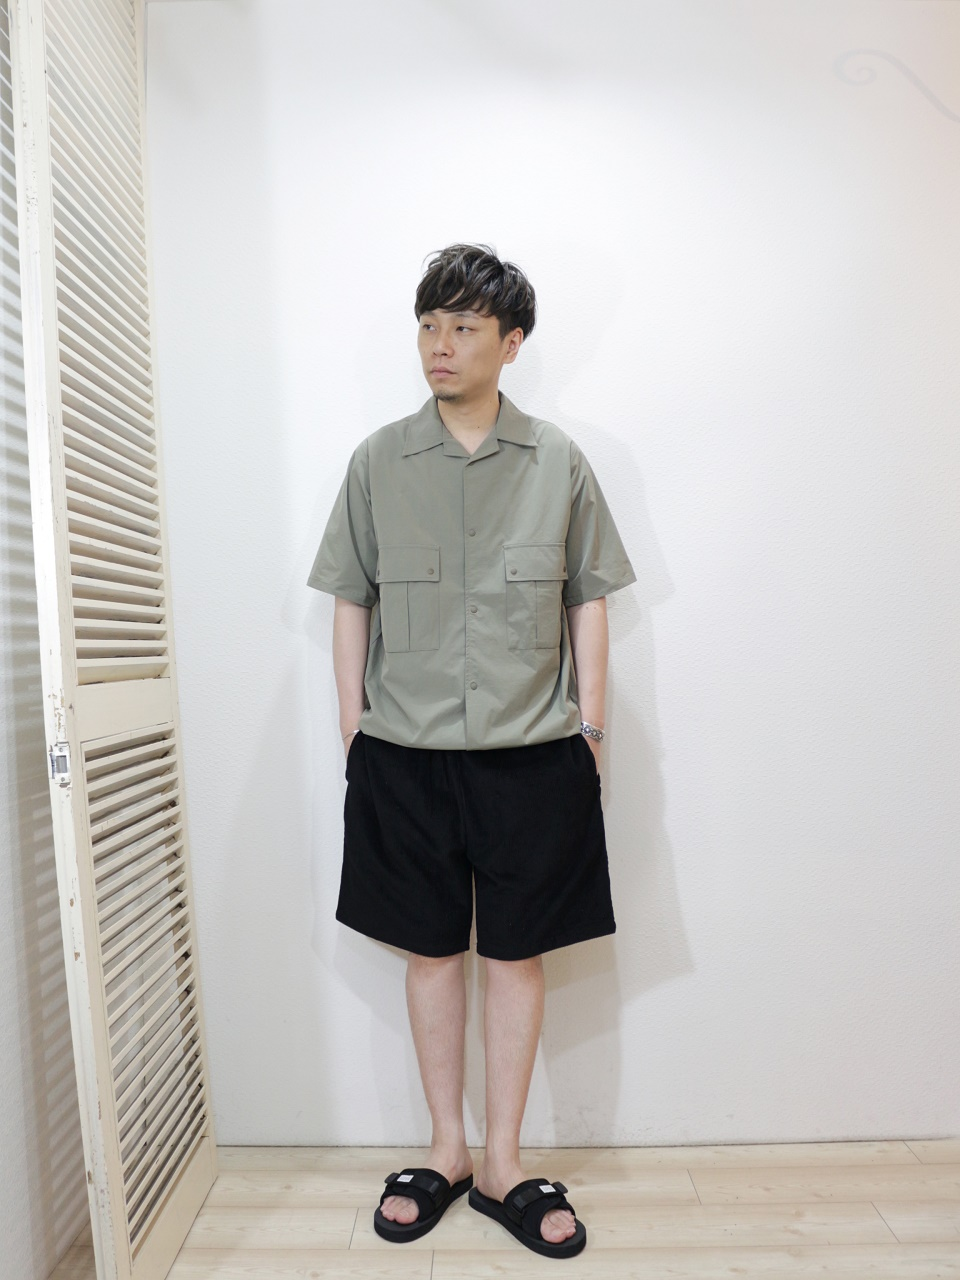 shirt/Kelen-Shapley(SIZE 38)pants/COOKMAN-Chef Short Pants Corduroy(SIZE L)shoes/SUICOKE-PADRI(SIZE US8)を使ったコーディネート